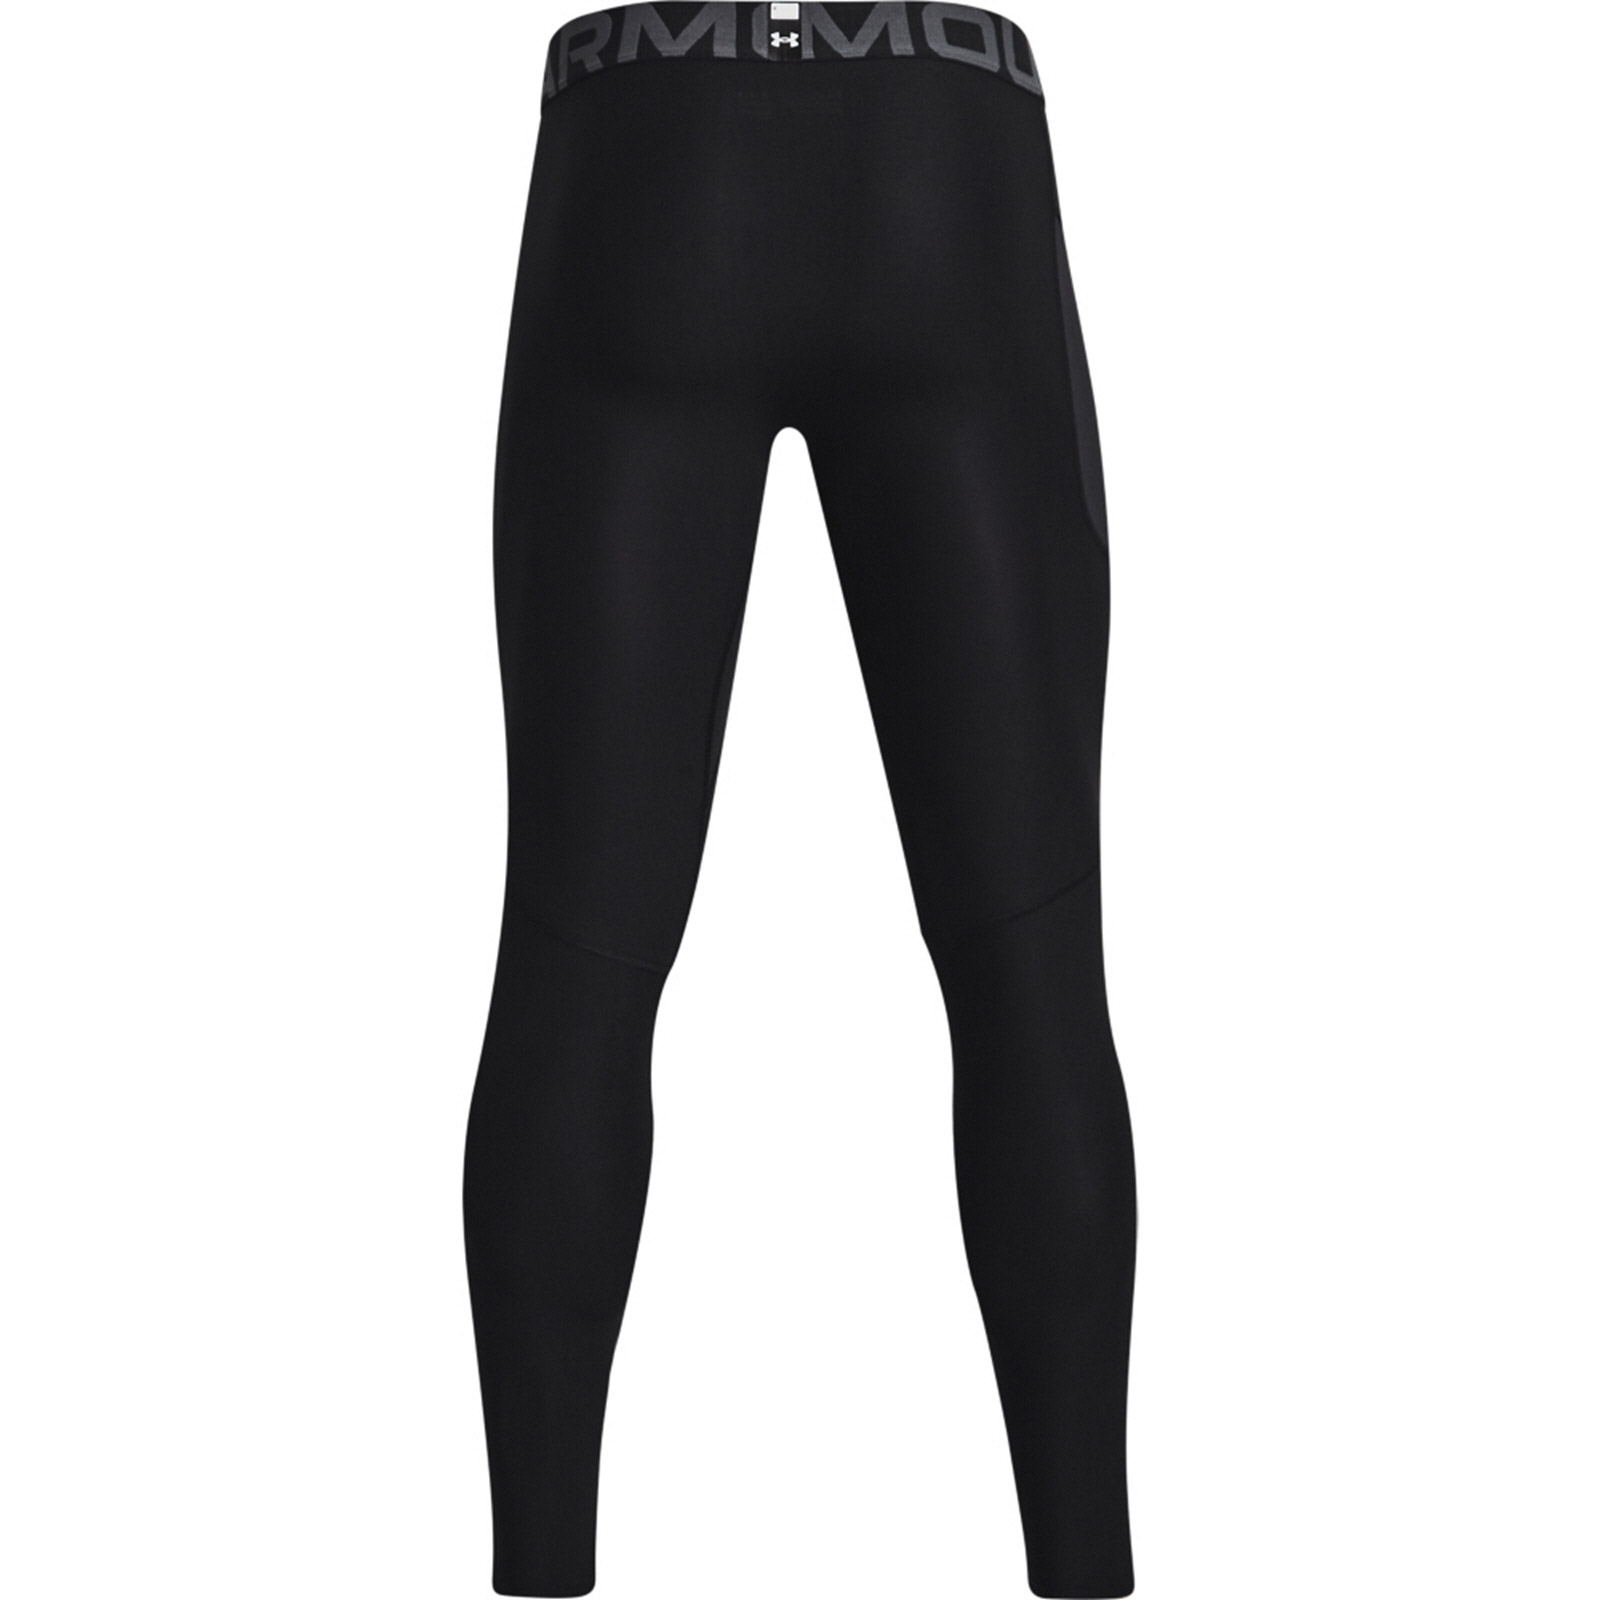 Under Armour Men's HG Armour Leggings, Black